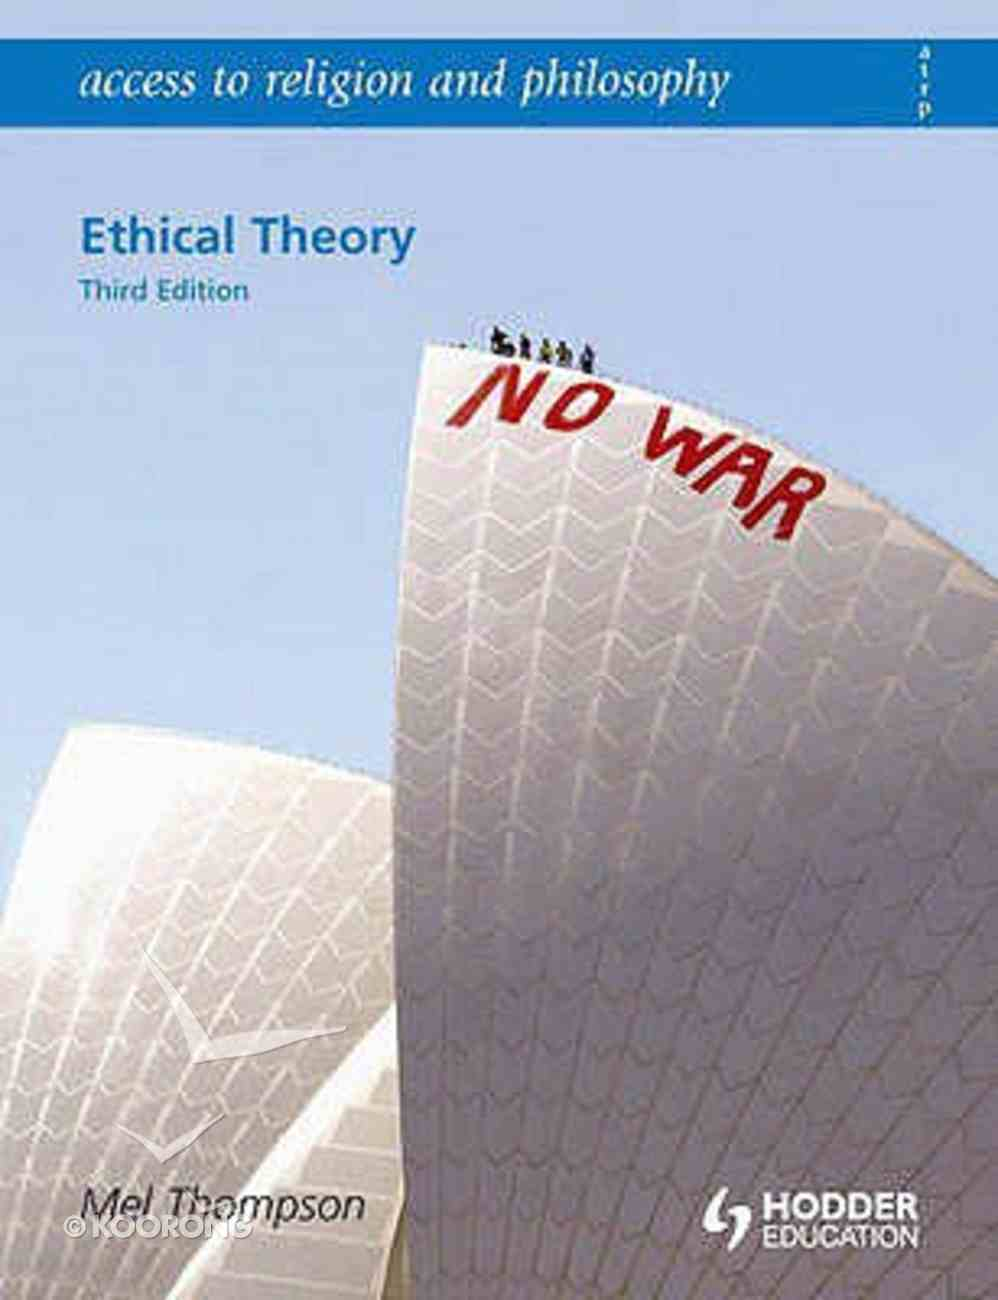 Ethical Theory Senior School (Third Edition) Paperback